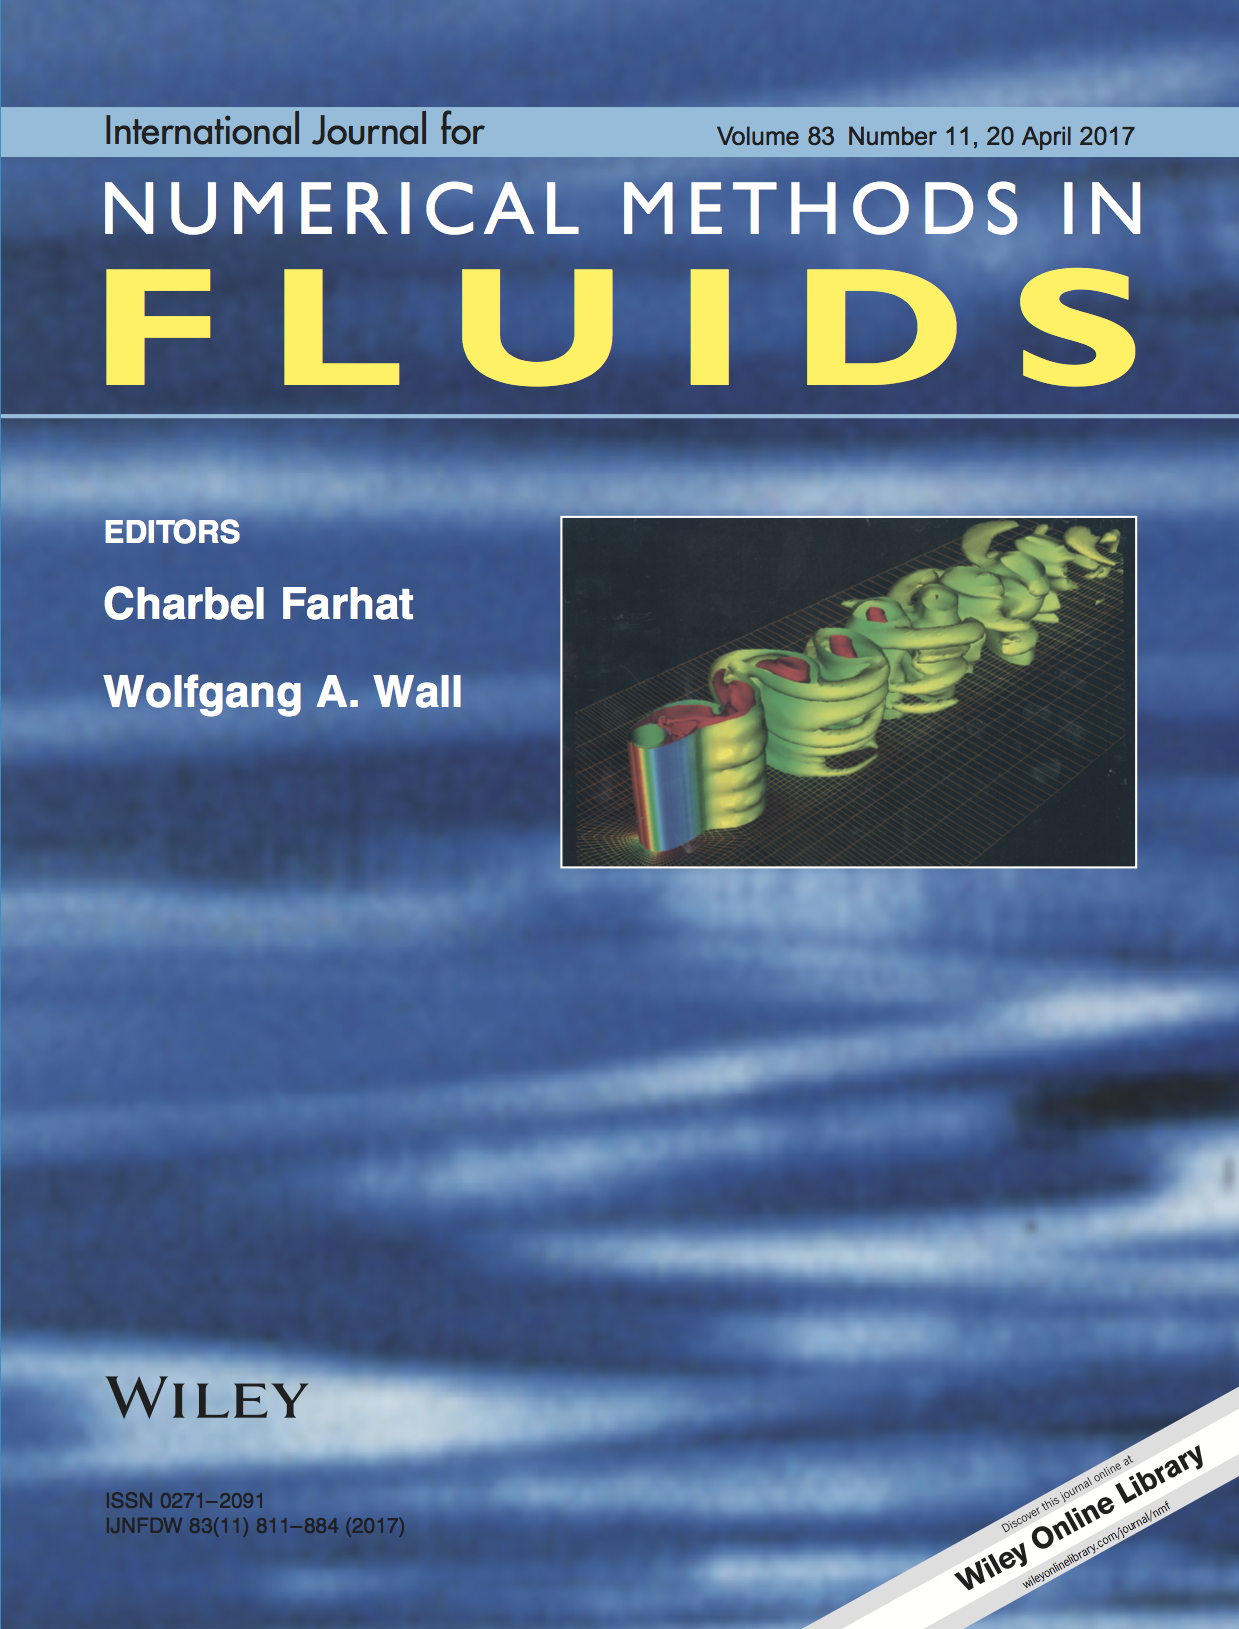 International Journal for Numerical Methods in Fluids template (Wiley)